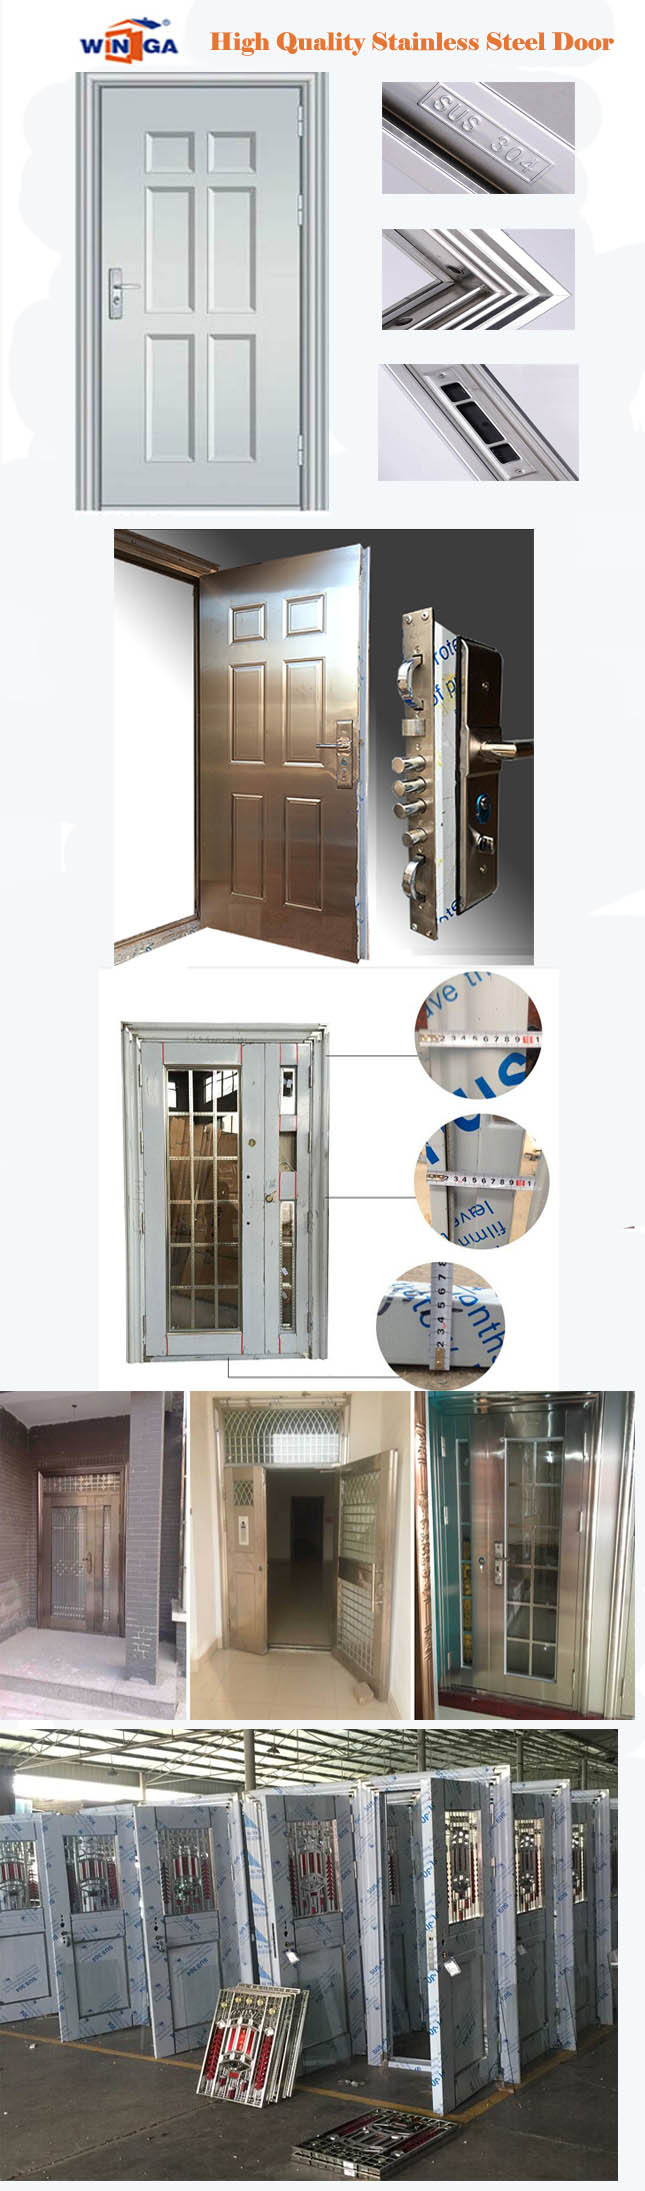 South Africa Stainless Steel Security Metal Glass Door (W-GH-24)